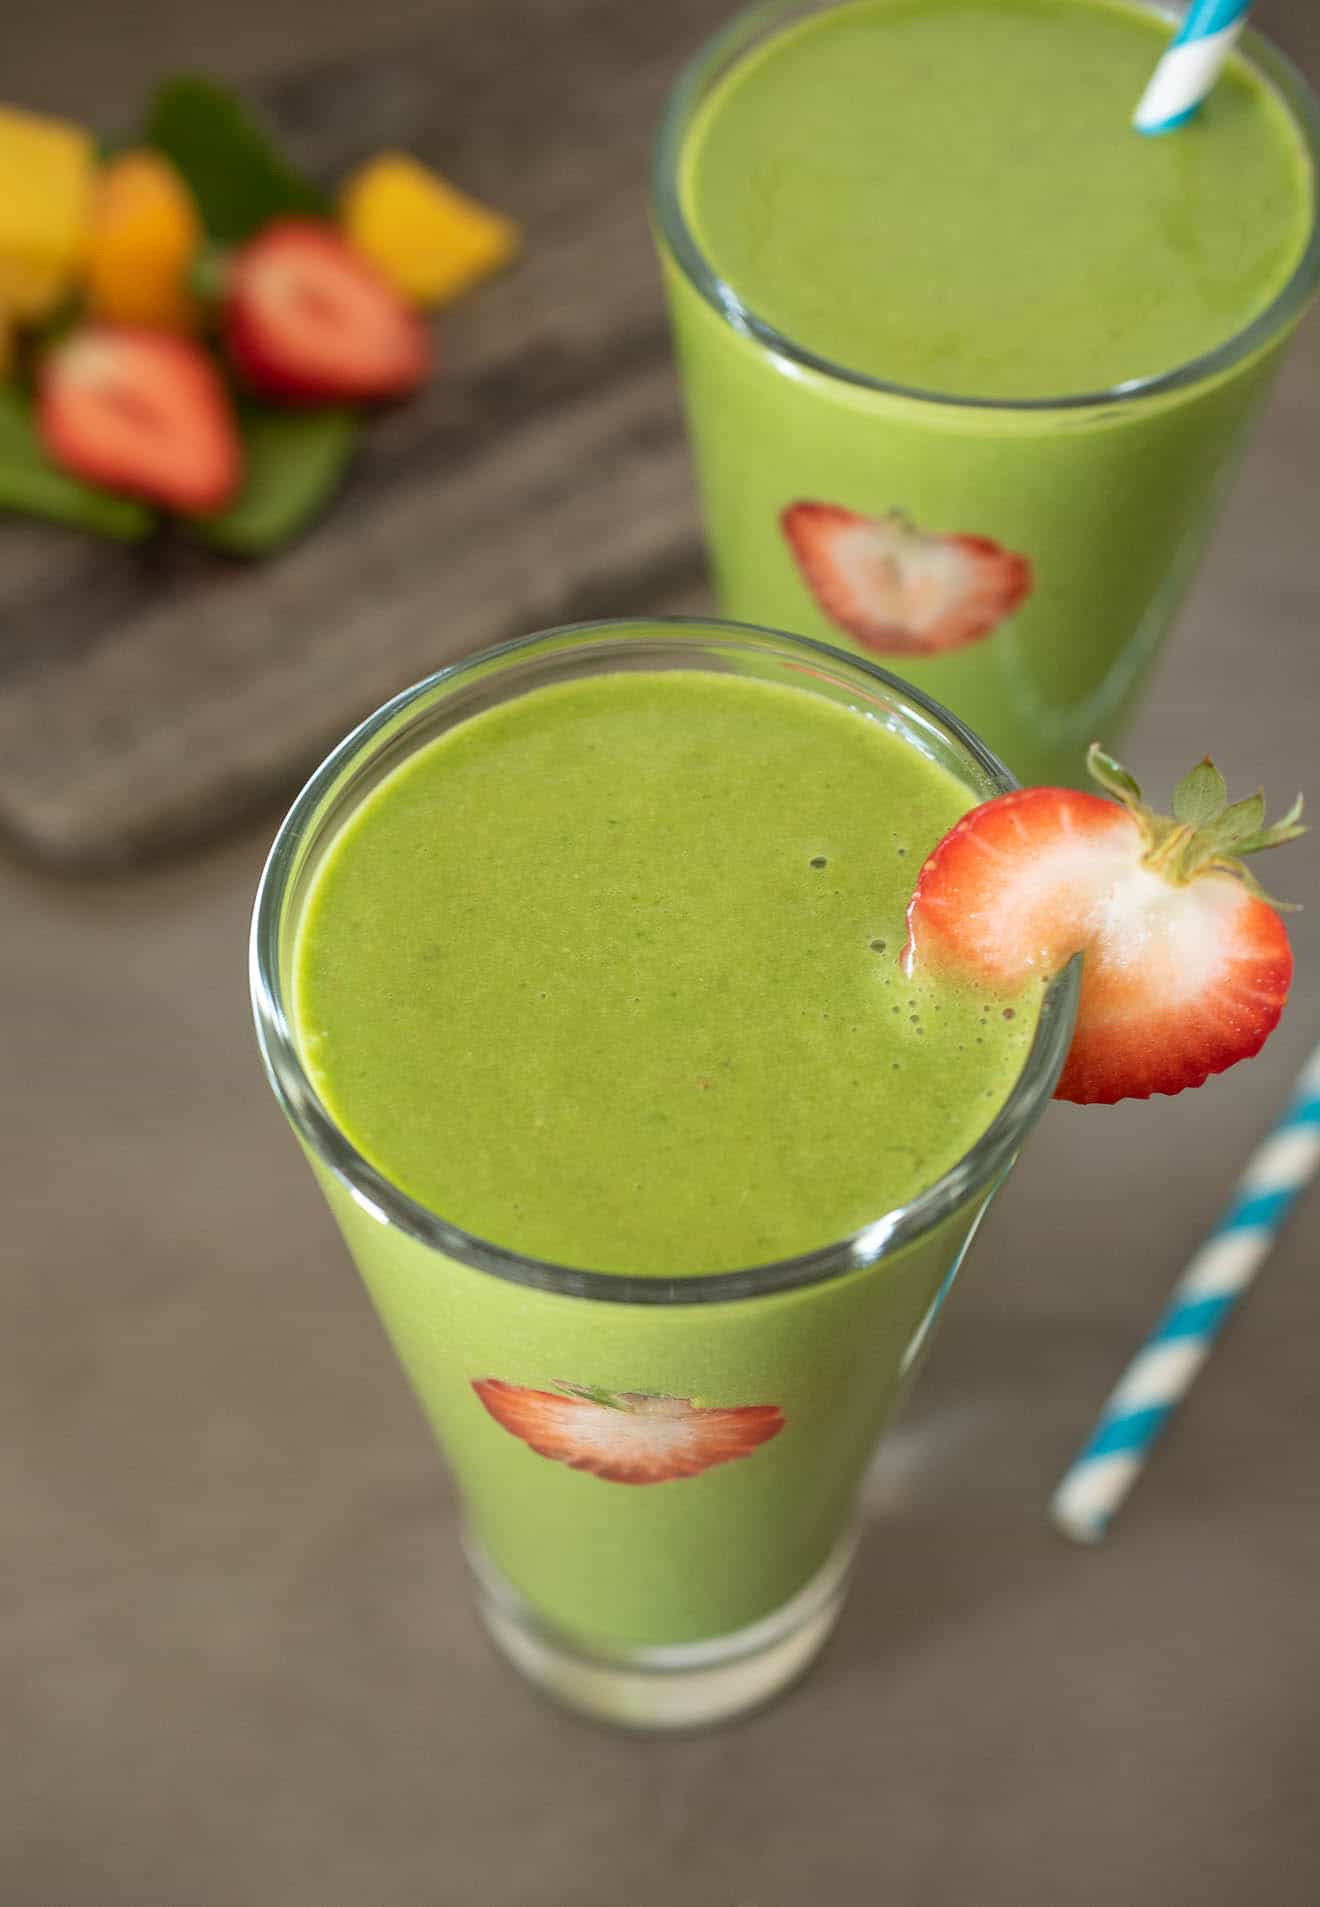 A vibrant green smoothie from above